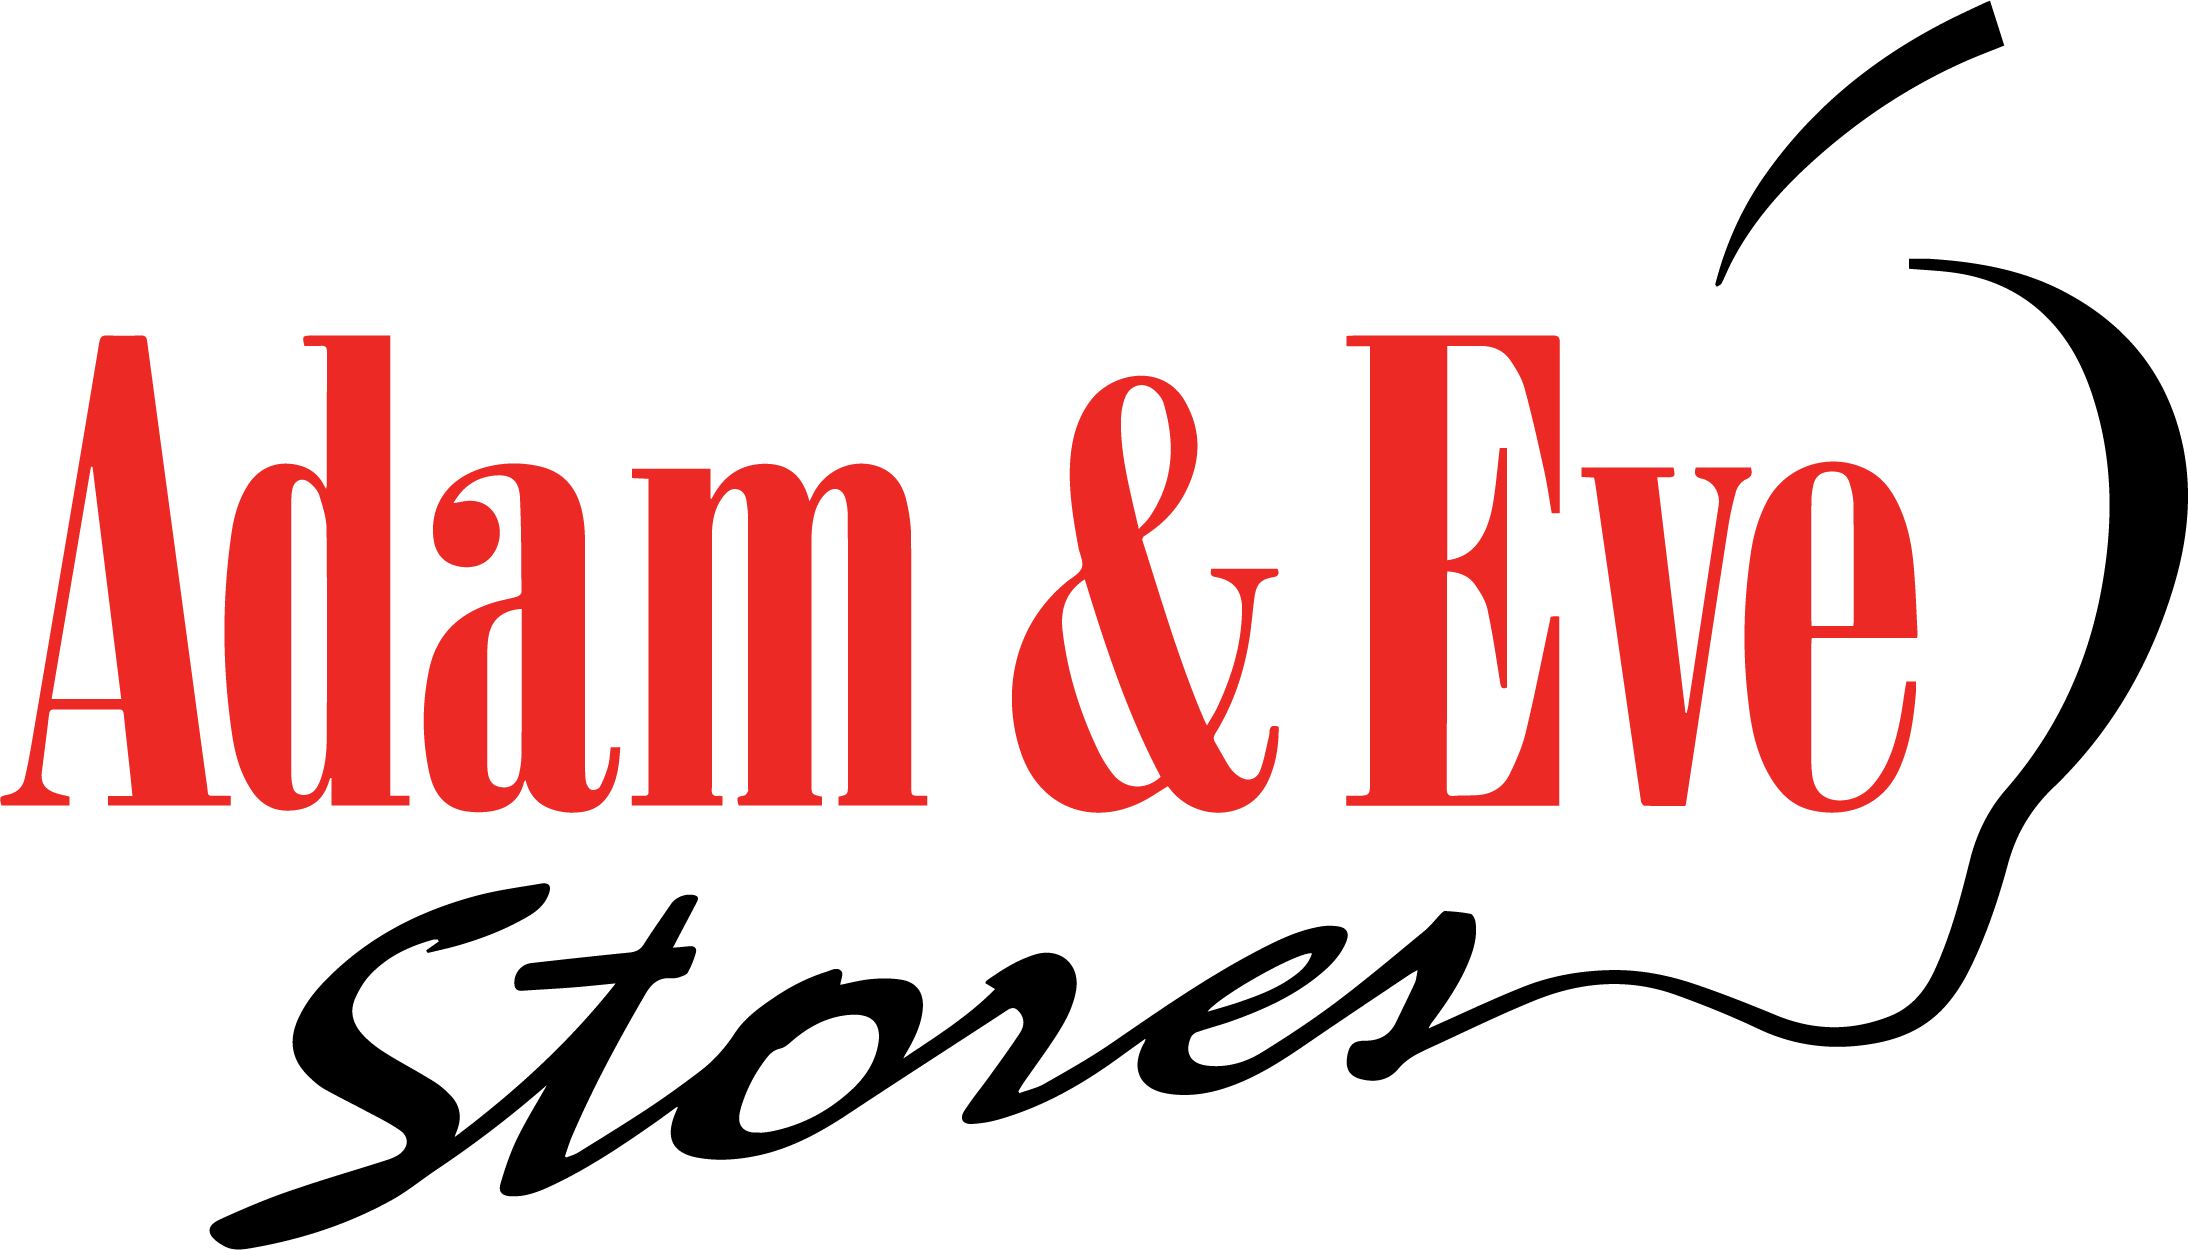 Adam & Eve Franchise